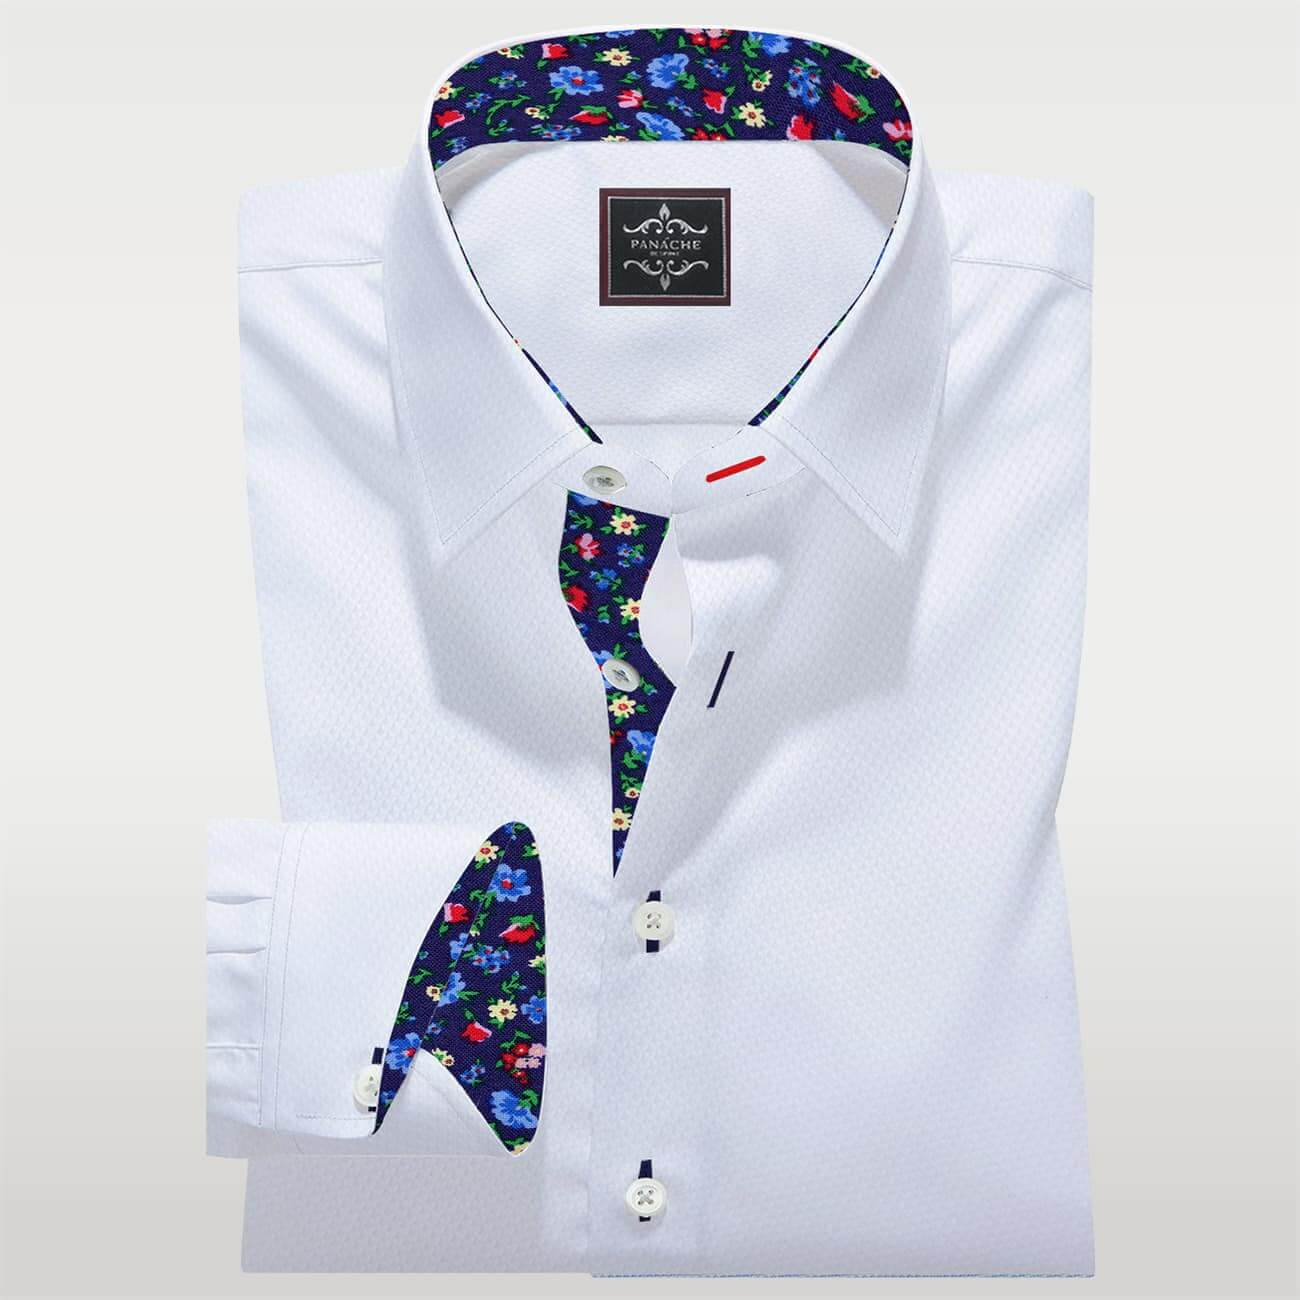 Mens Dress Shirts White Royal oxford Luxury shirt